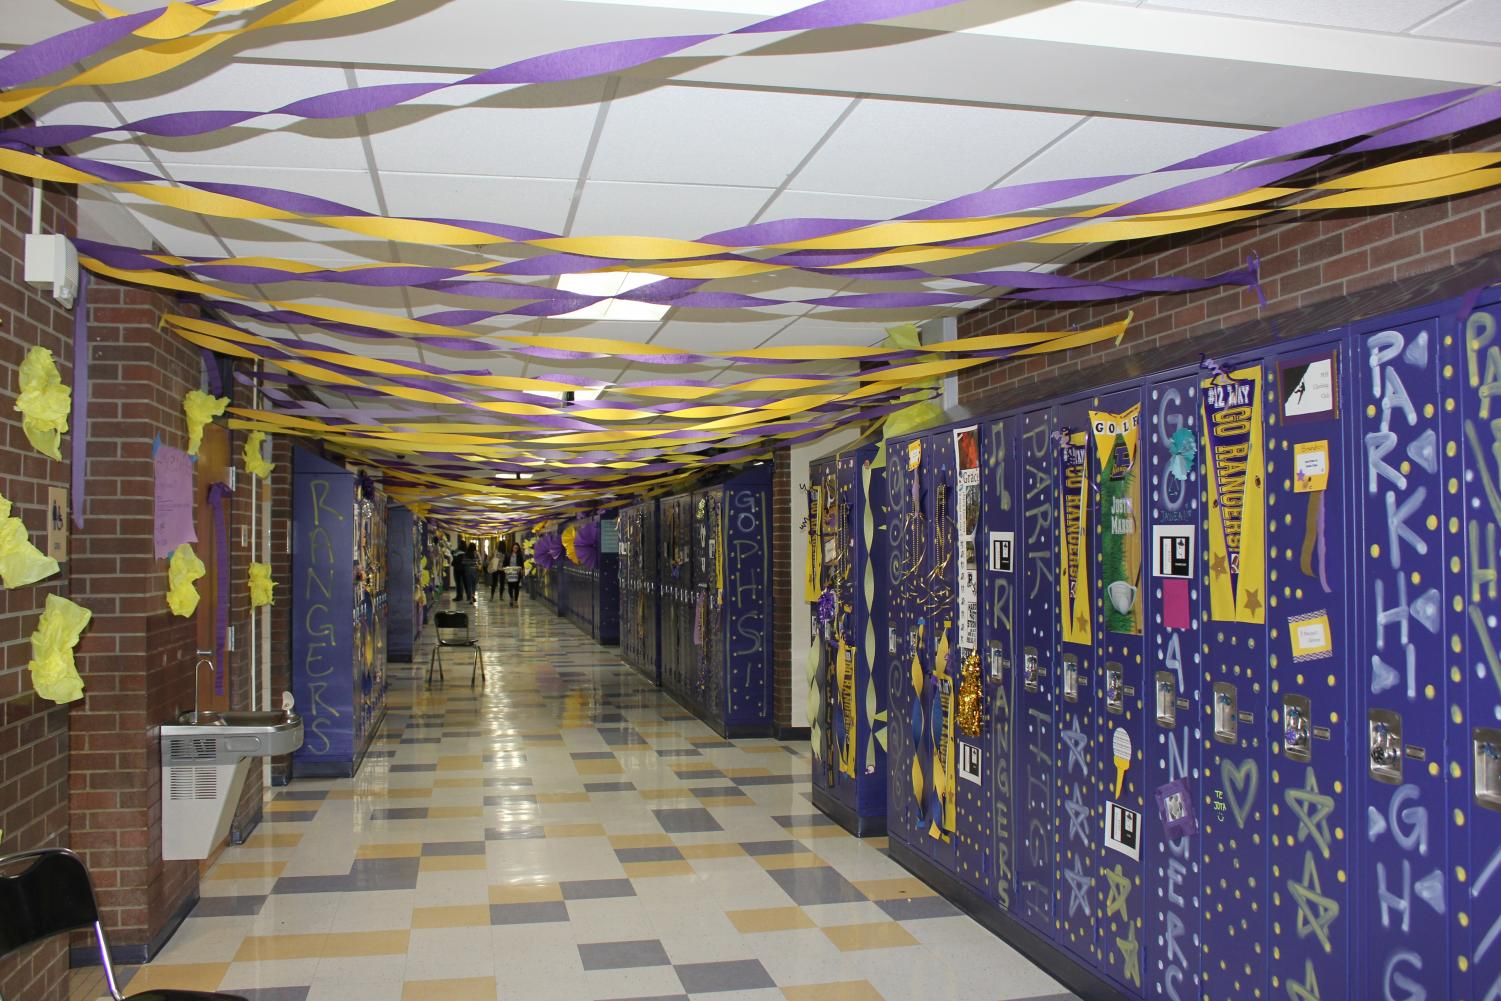 Sophomore hallway at PHS during hall decoration Sunday September 23rd.  Photo credit Calogero Olds